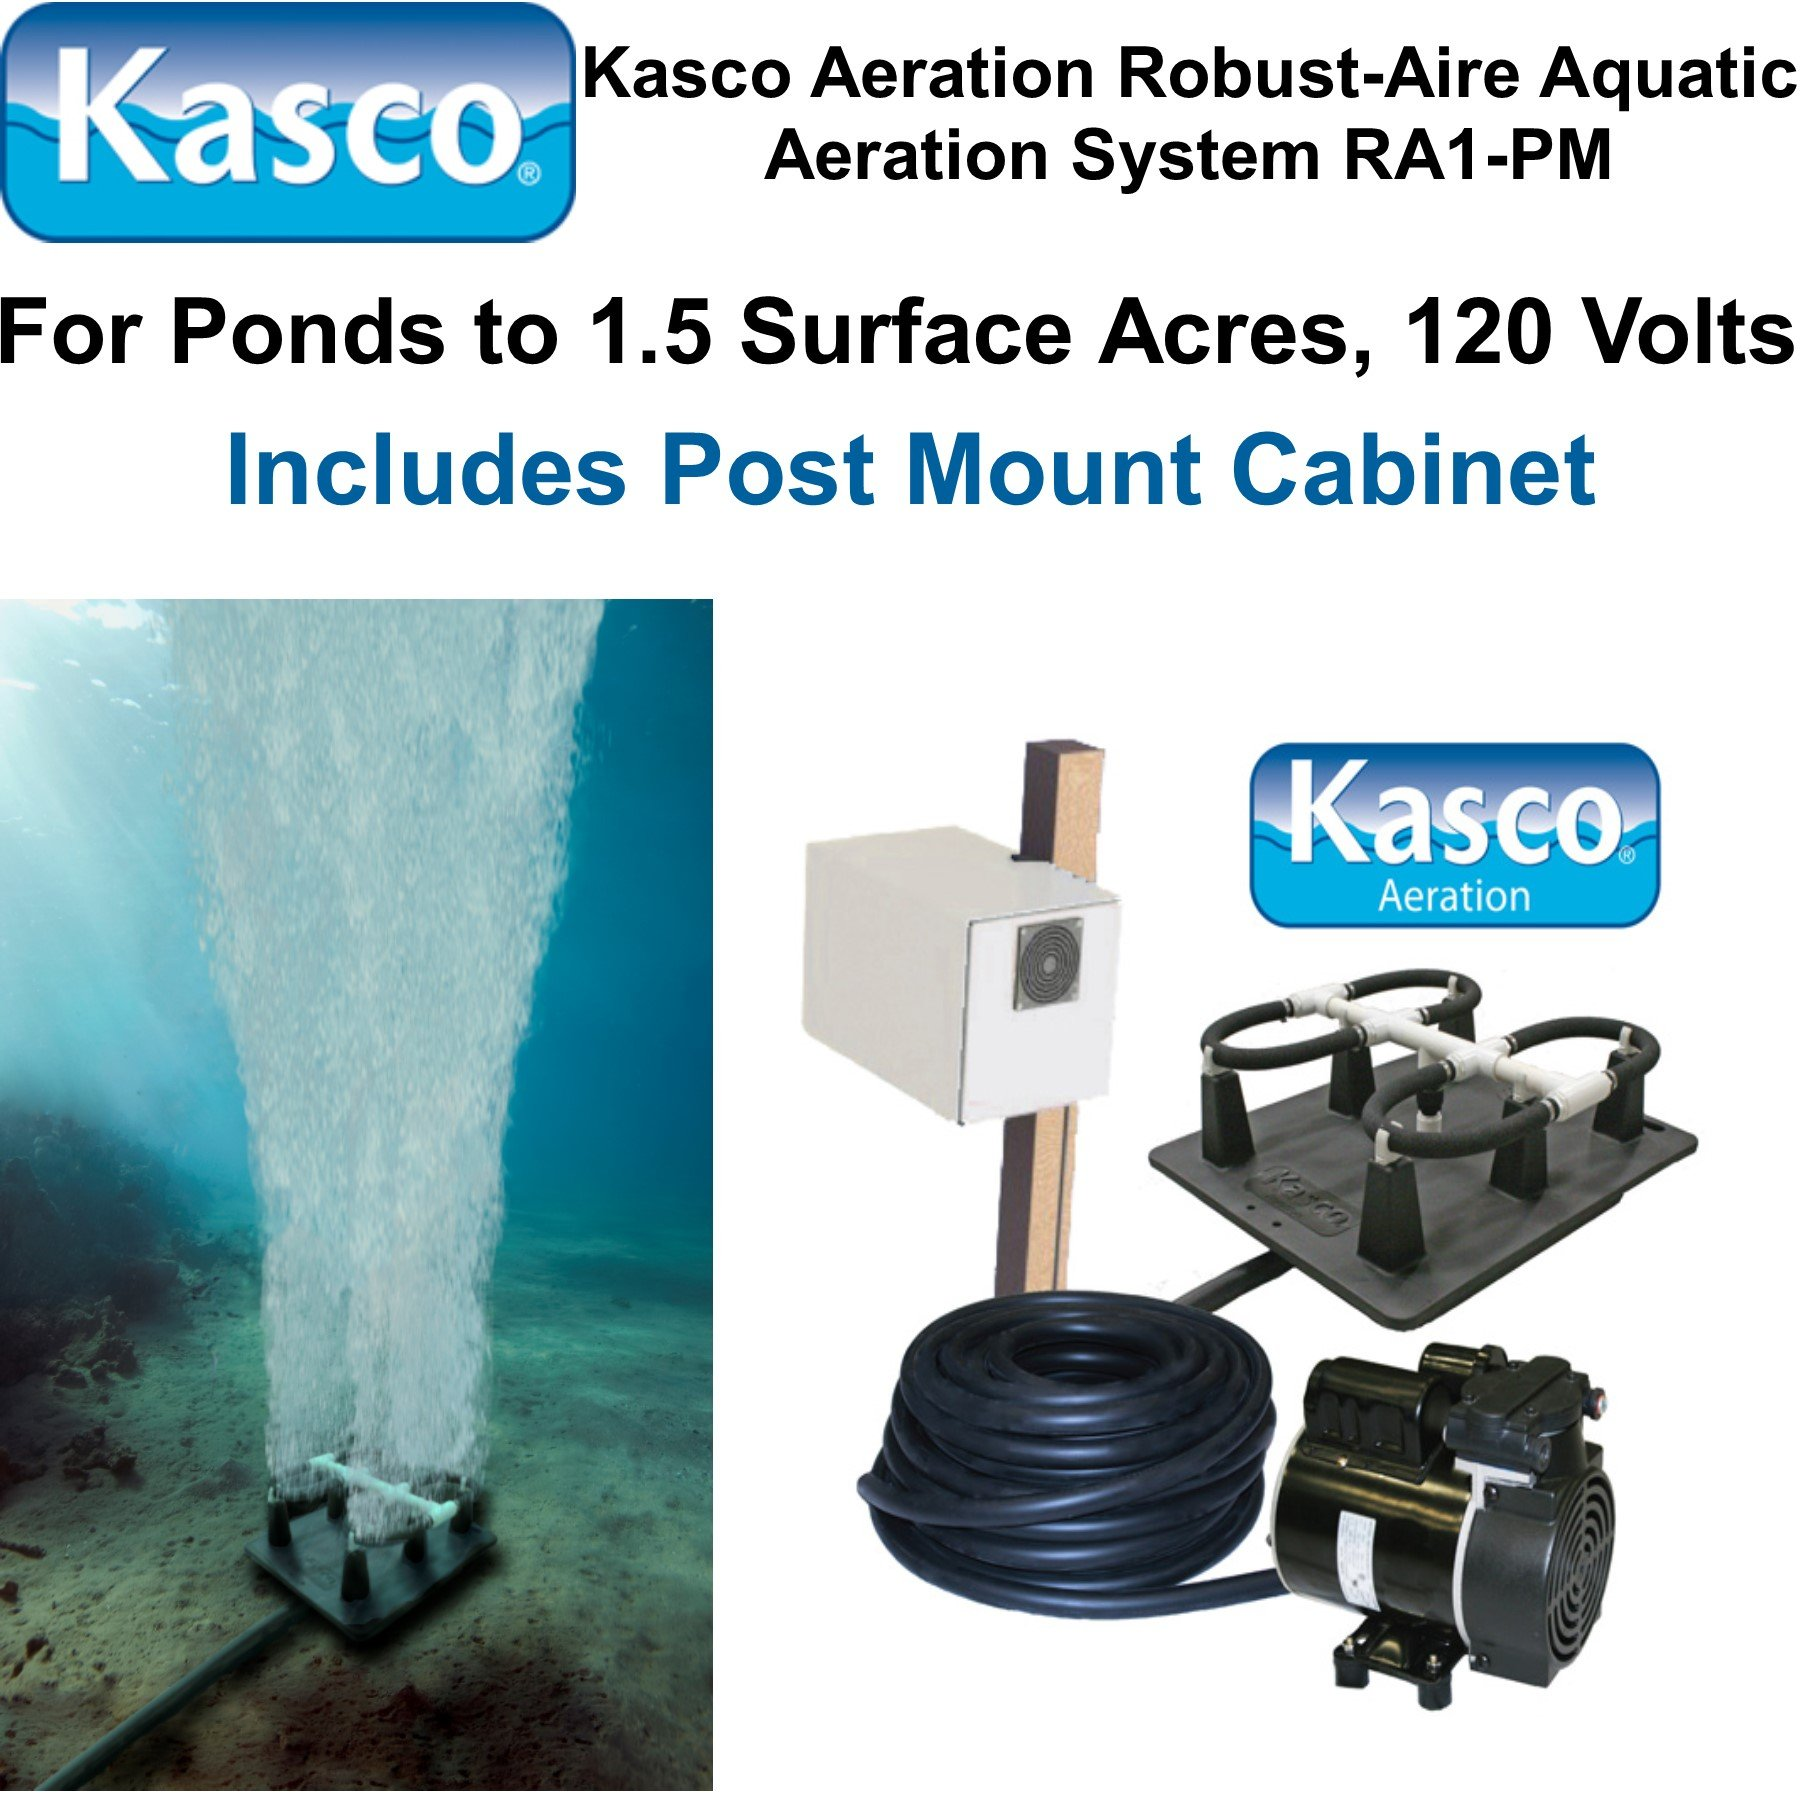 Kasco Marine Robust-Aire Aquatic Aeration System RA1PM - For Ponds to 1.5 Surface Acres, 120 Volts, Includes Post Cabinet Mount by Kasco Marine